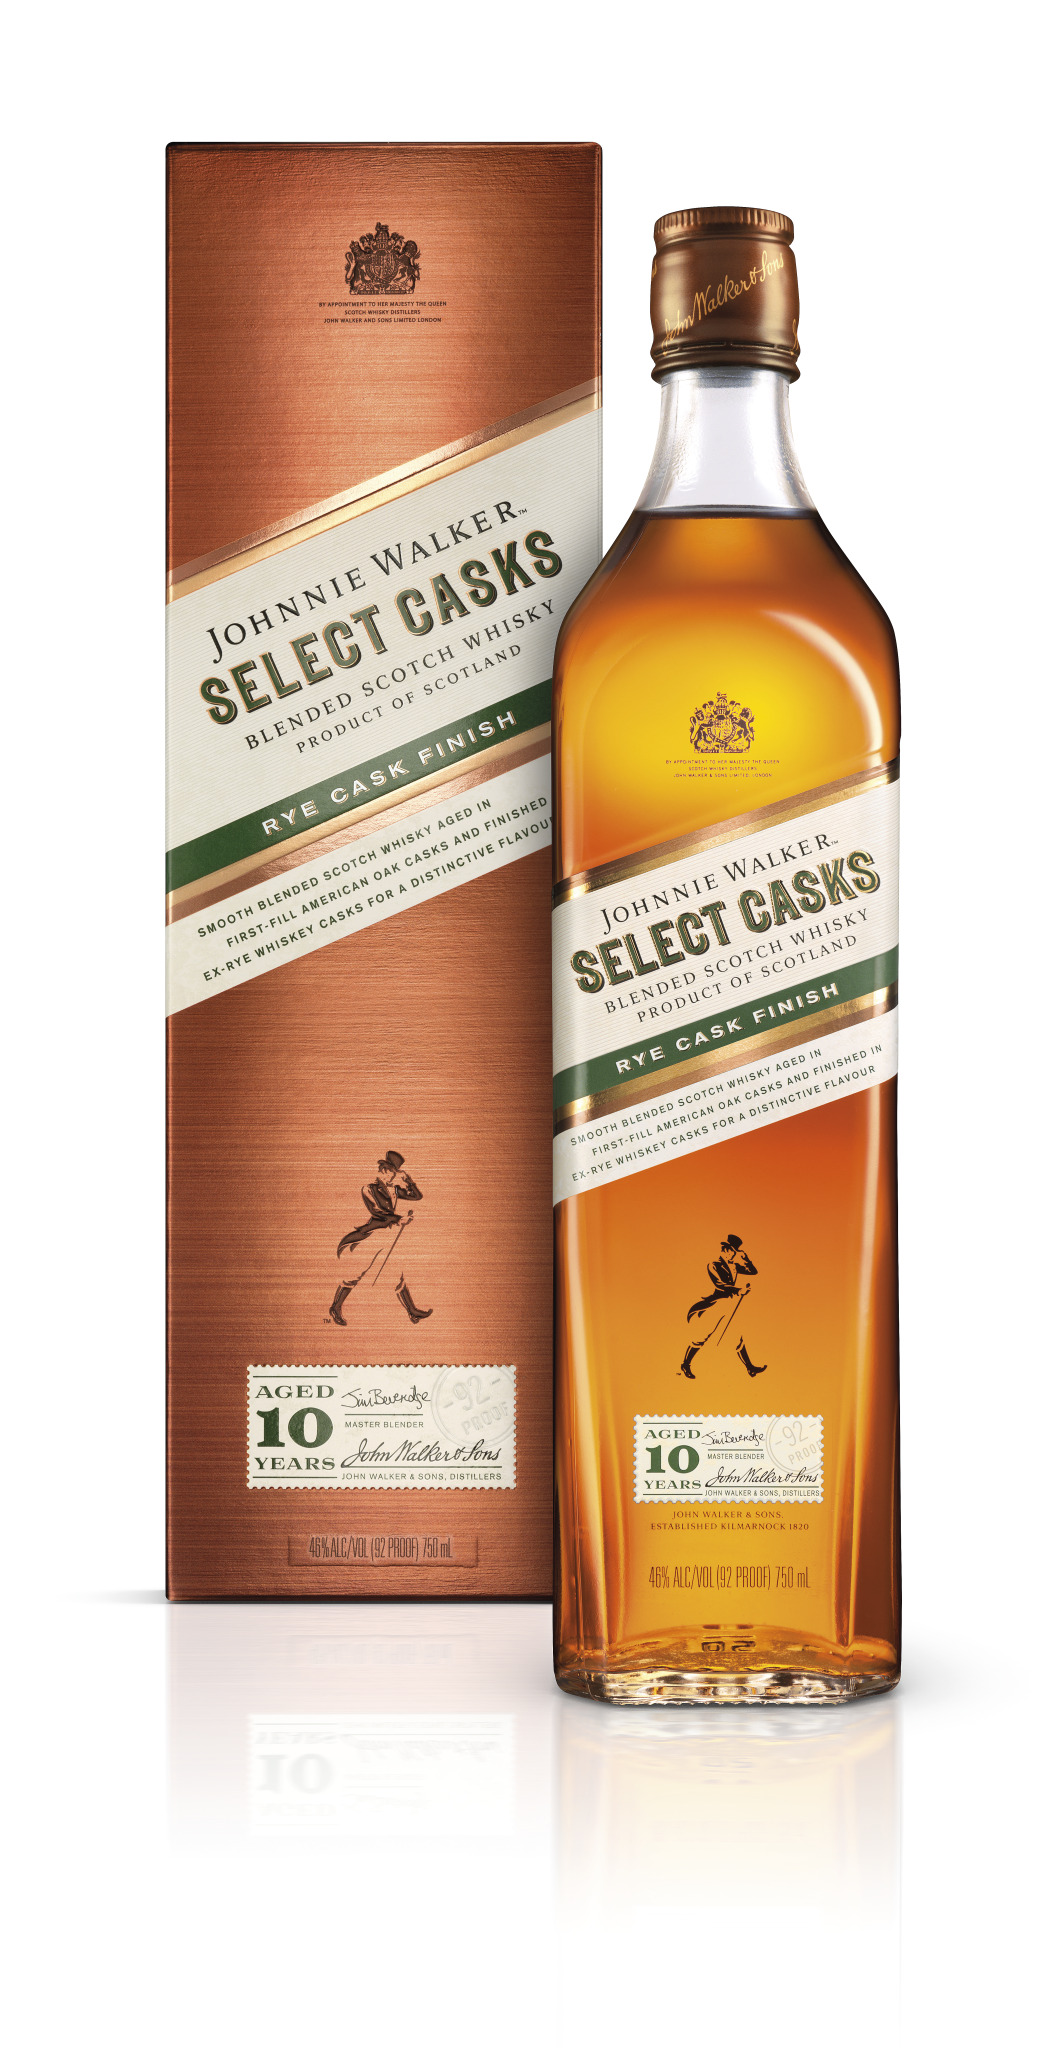 Johnnie Walker Launches Select Cask Series